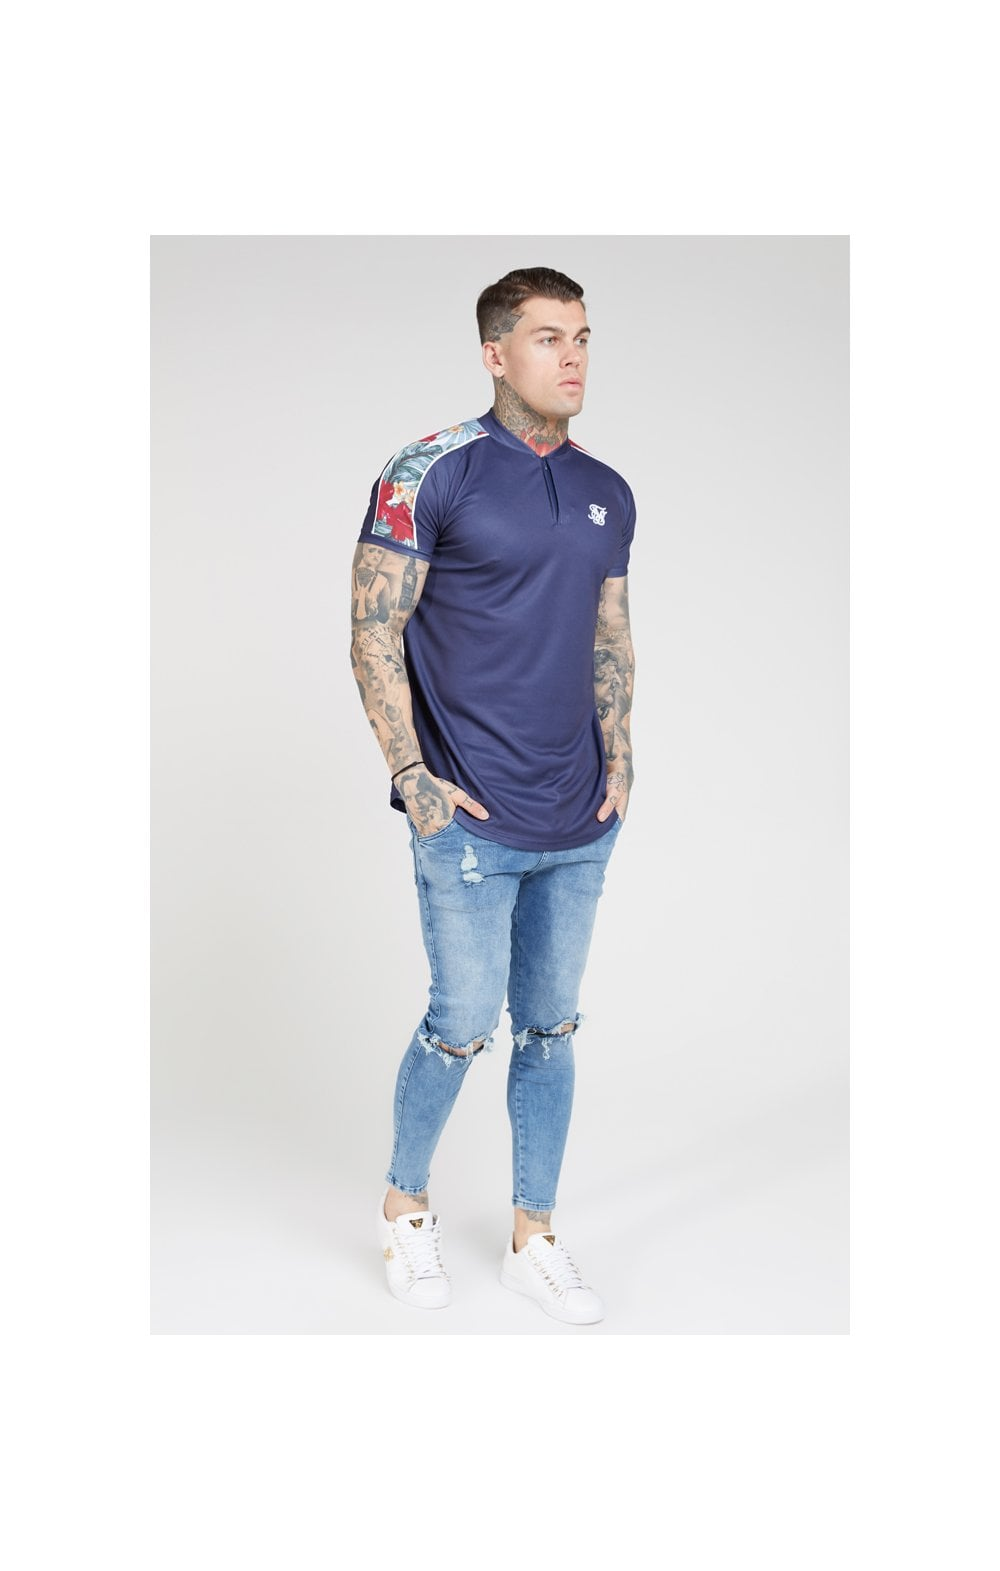 SikSilk S/S Baseball Tee – Navy (4)